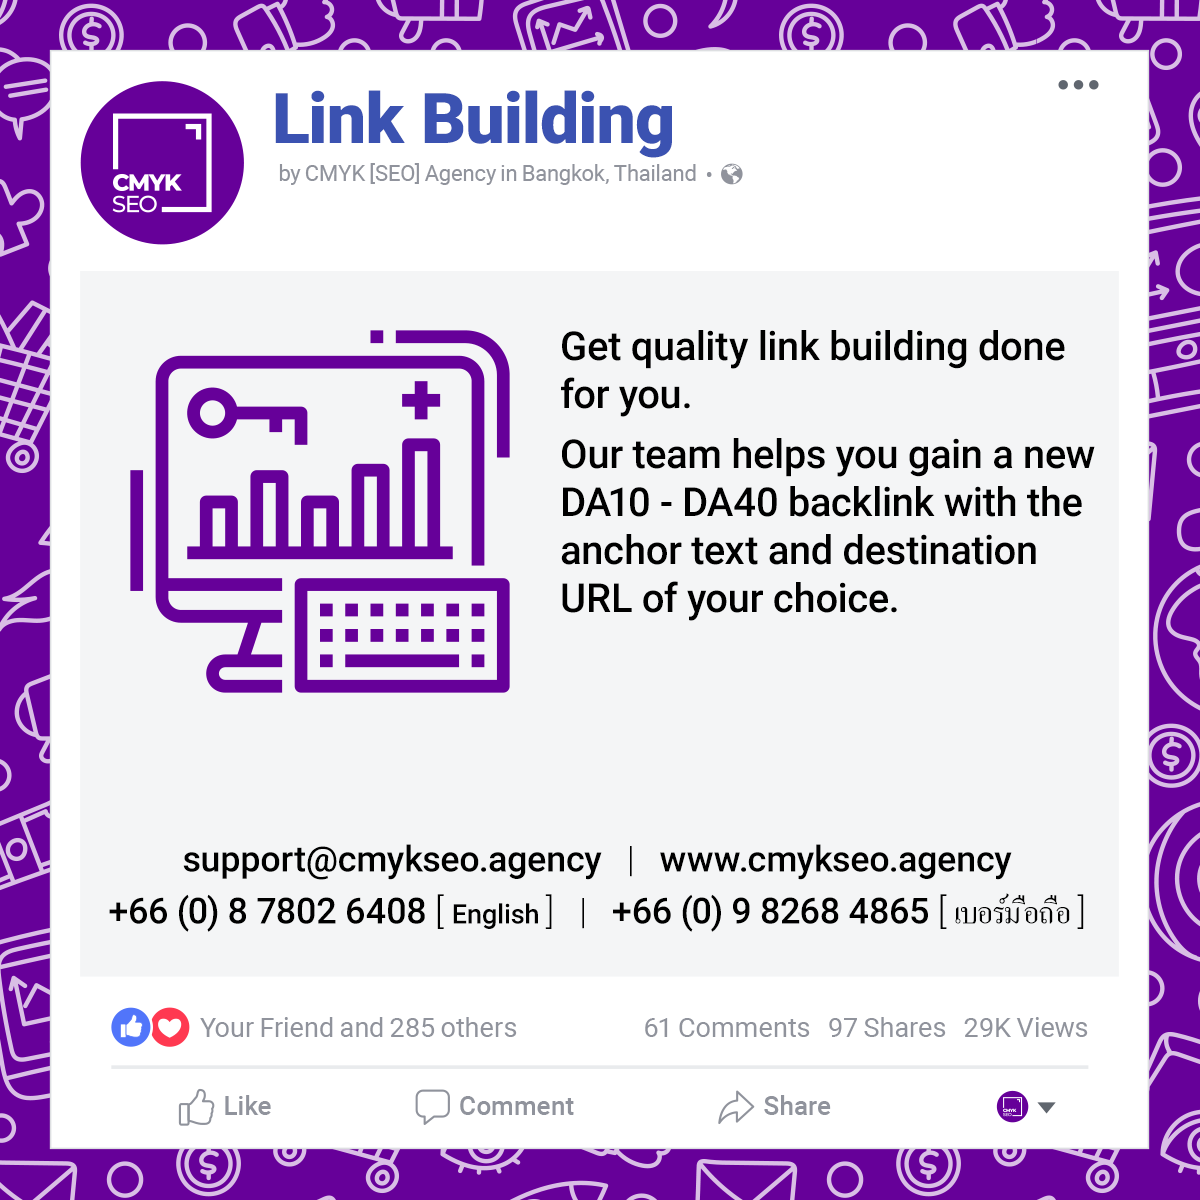 Link Building Services by CMYK SEO Agency in Bangkok Thailand | CMYK [SEO]: Bangkok SEO/SEM Agency